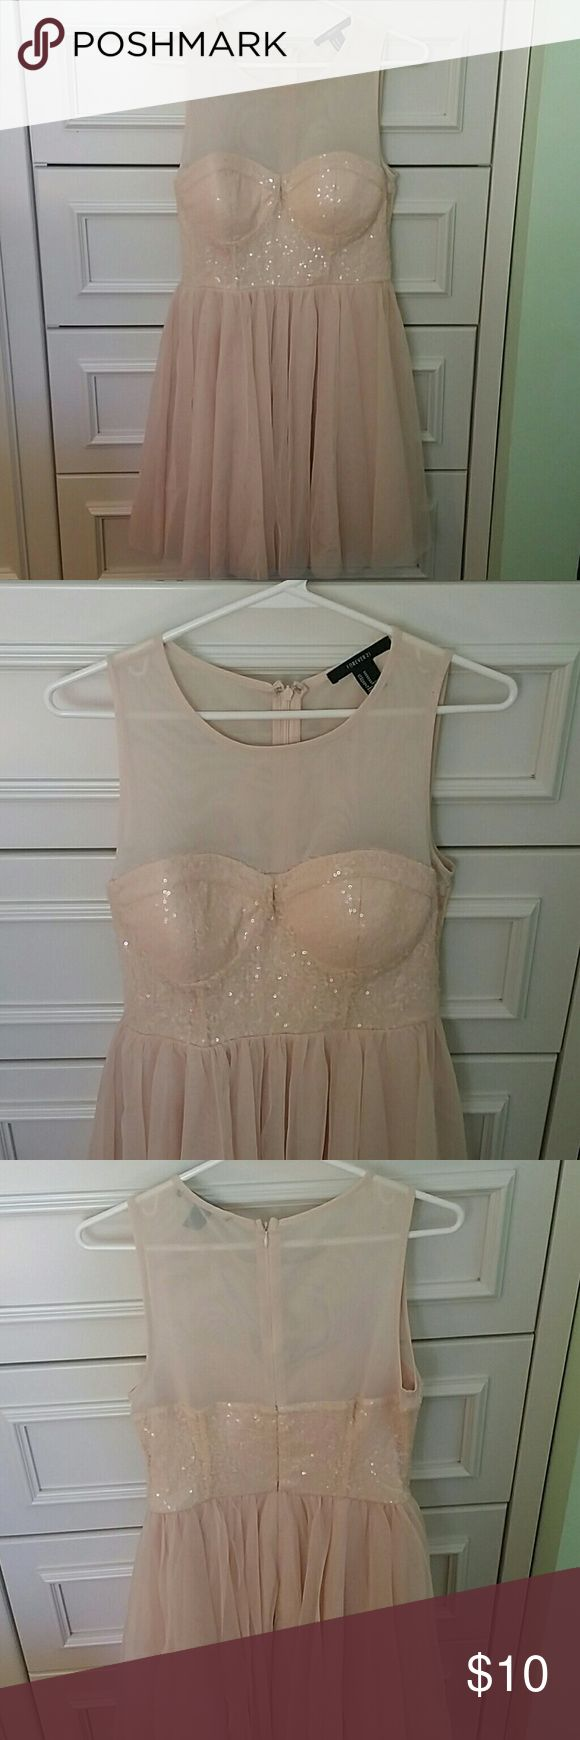 f21 sequined dress light pinkbeige dress mesh top with sequined bust padded